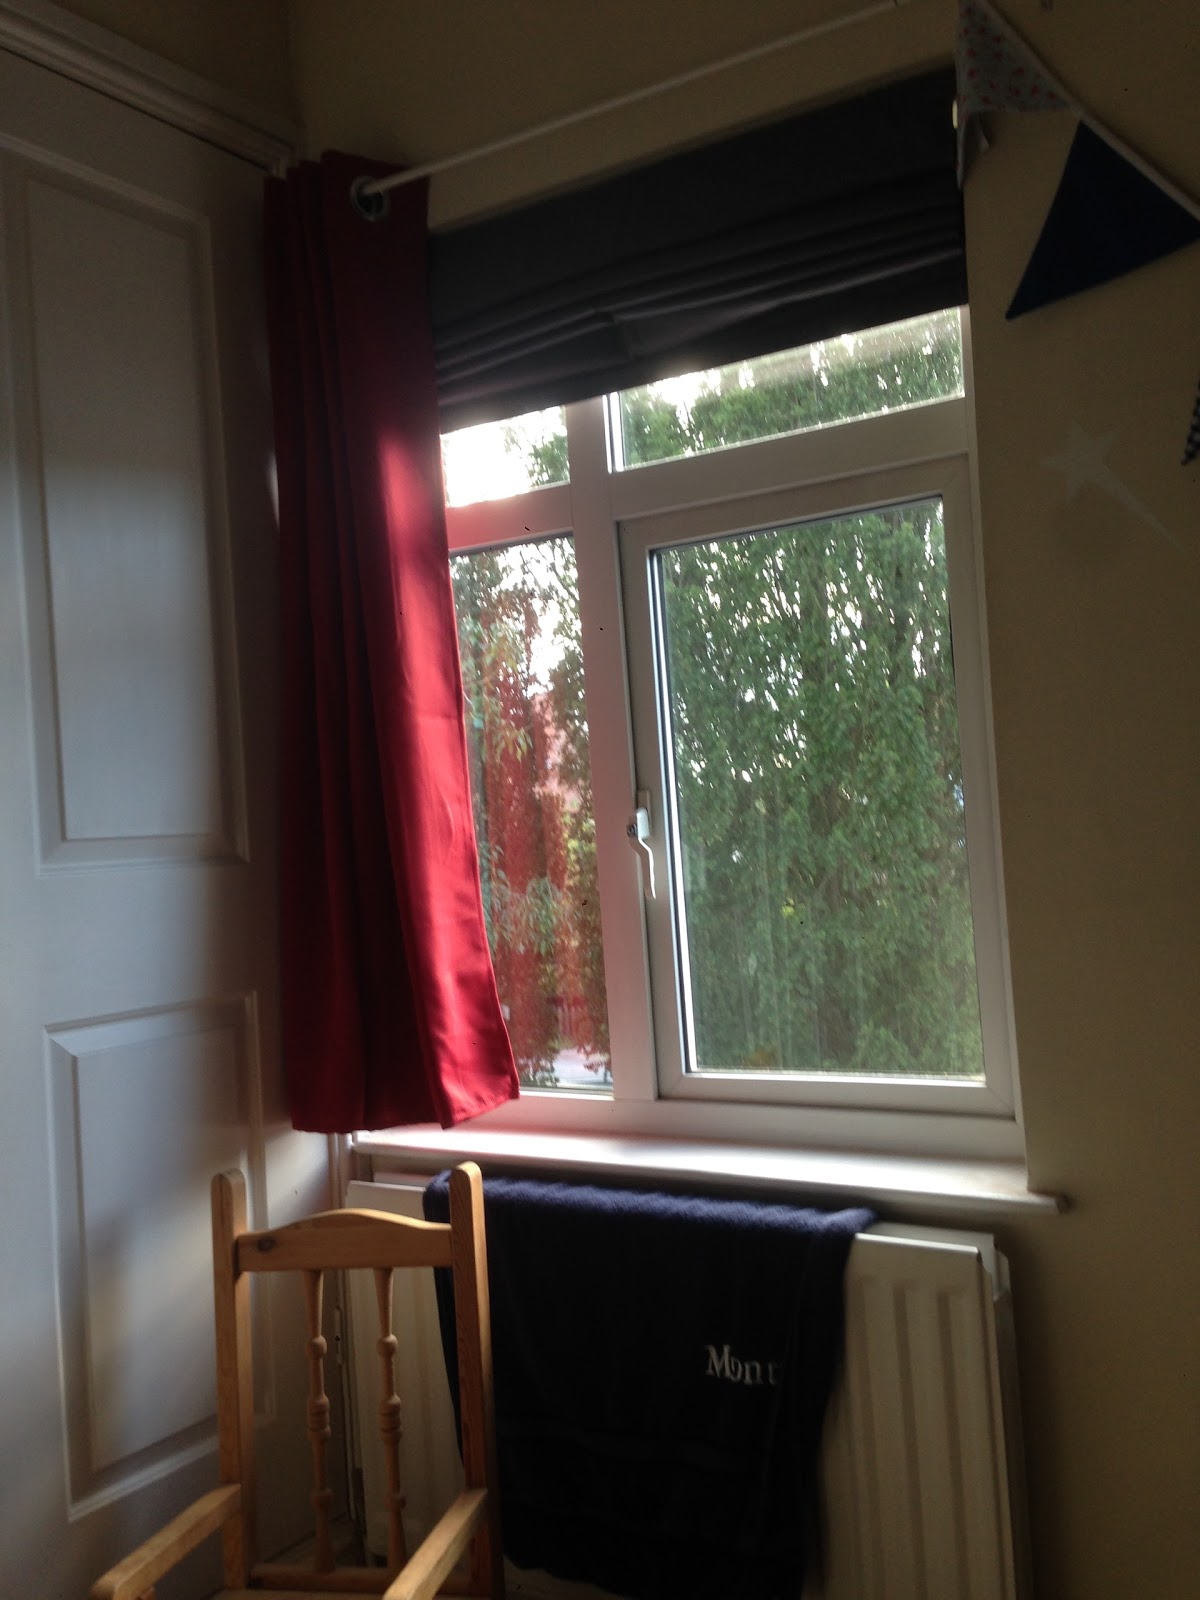 Also note when measuring windows for curtains